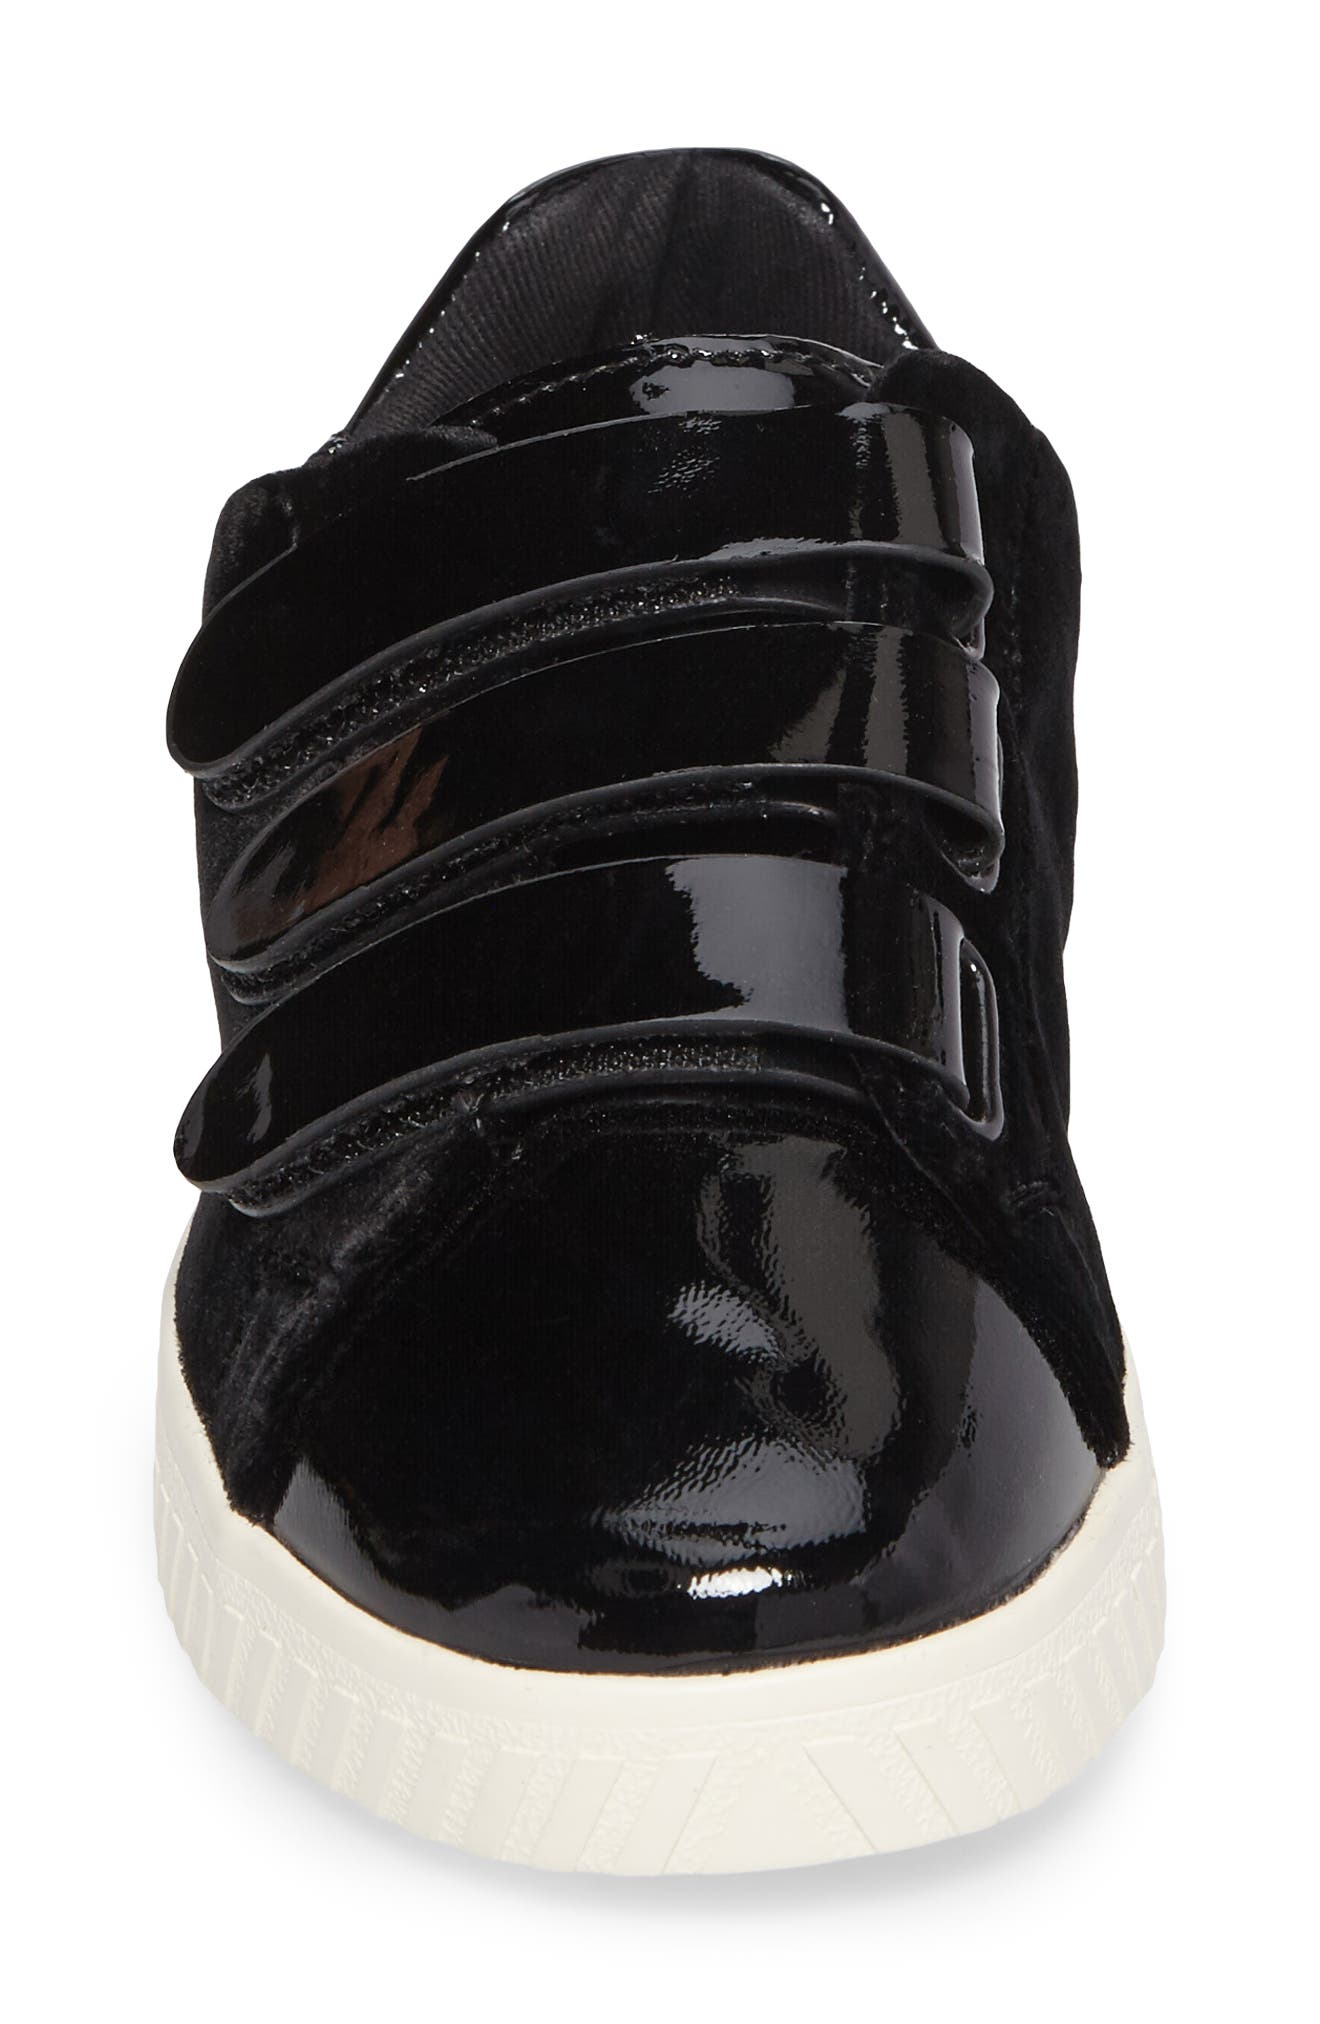 Carry Sneaker,                             Alternate thumbnail 4, color,                             Black/ Nero